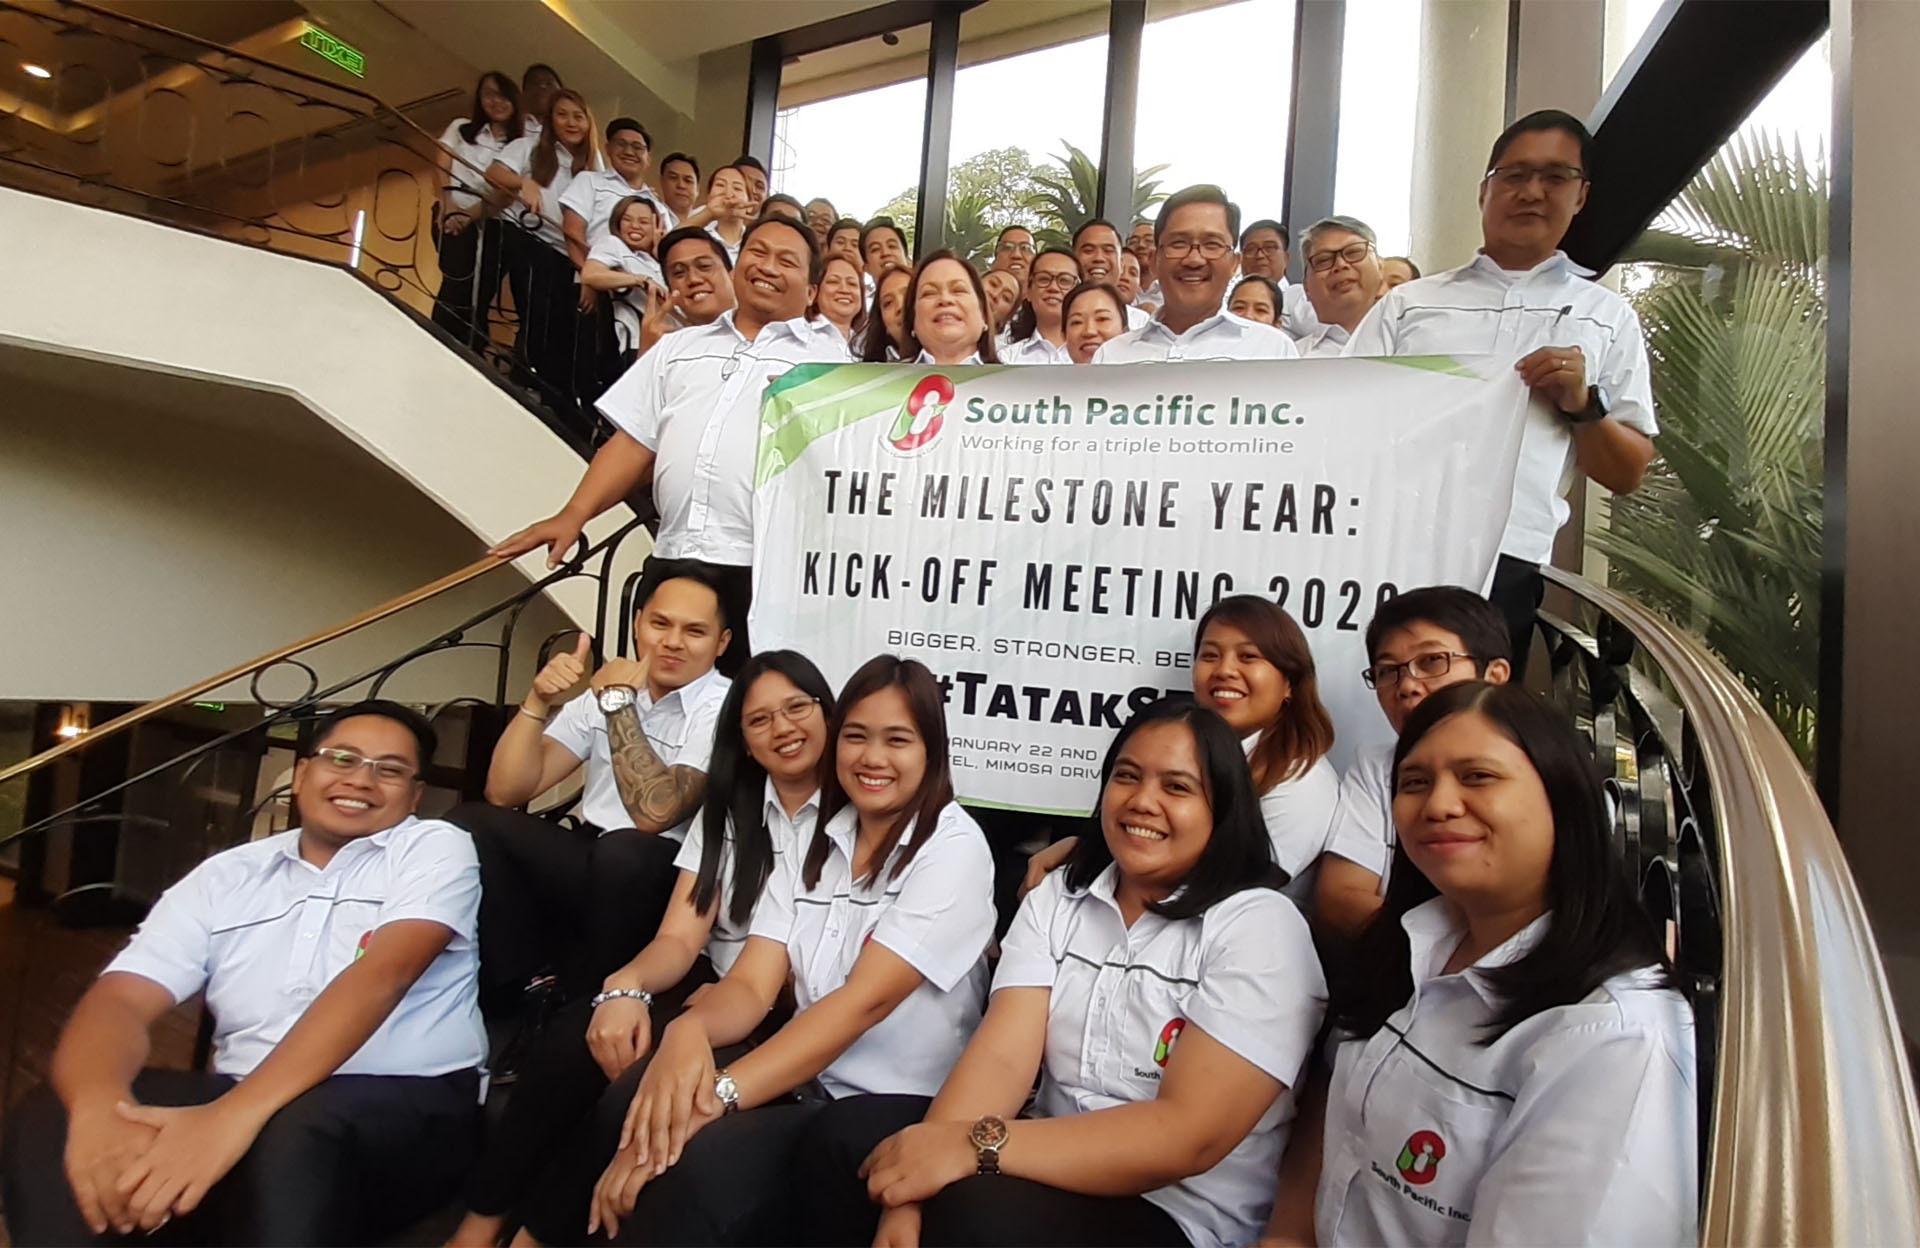 South Pacific Incorporated holds annual kick-off meeting